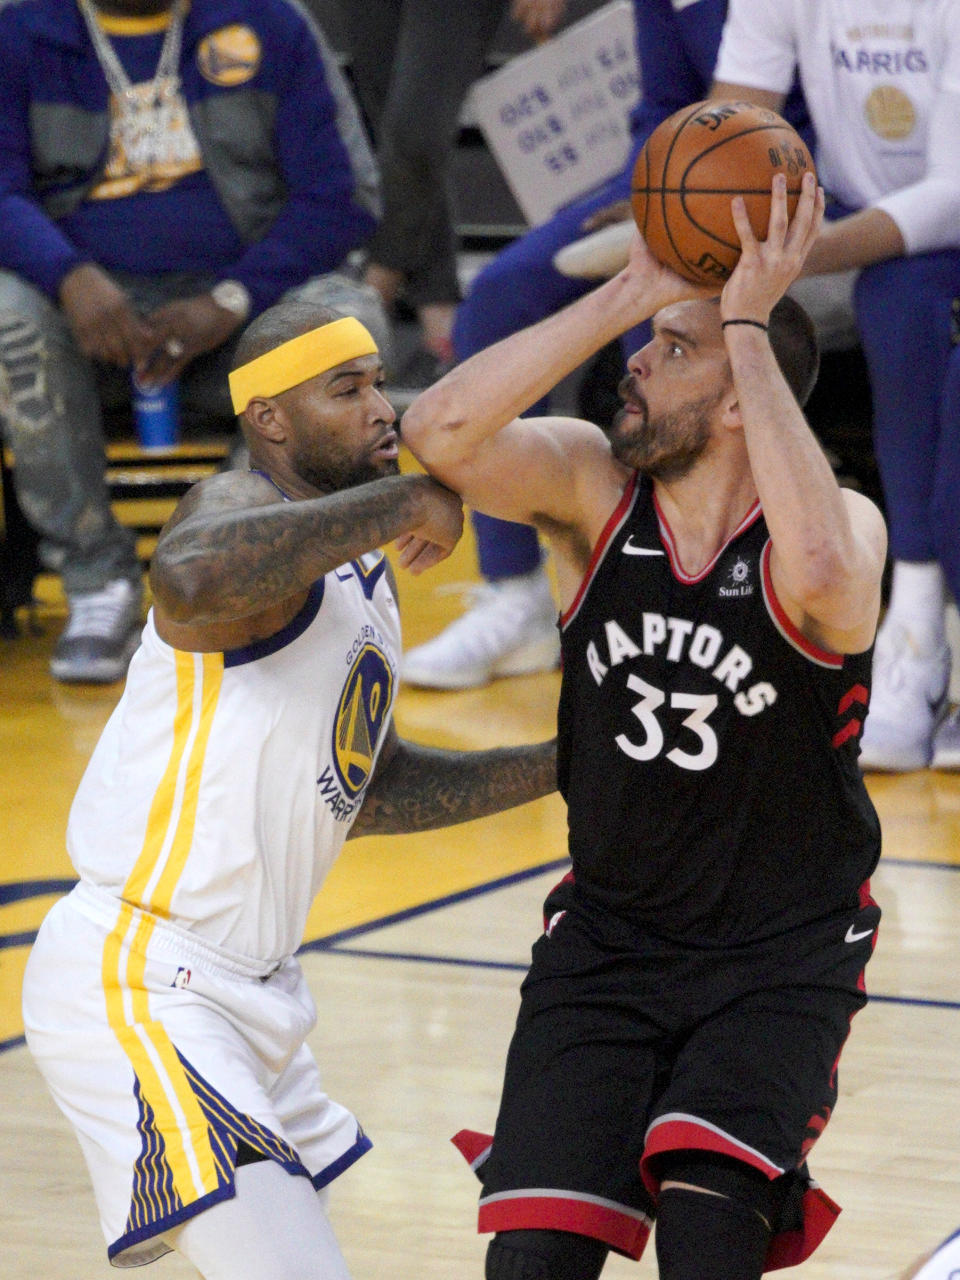 Toronto Raptors center Marc Gasol (33) shoots against Golden State Warriors center DeMarcus Cousins during the first half of during Game 3 of basketball's NBA Finals in Oakland, Calif., Wednesday, June 5, 2019. (AP Photo/Tony Avelar)